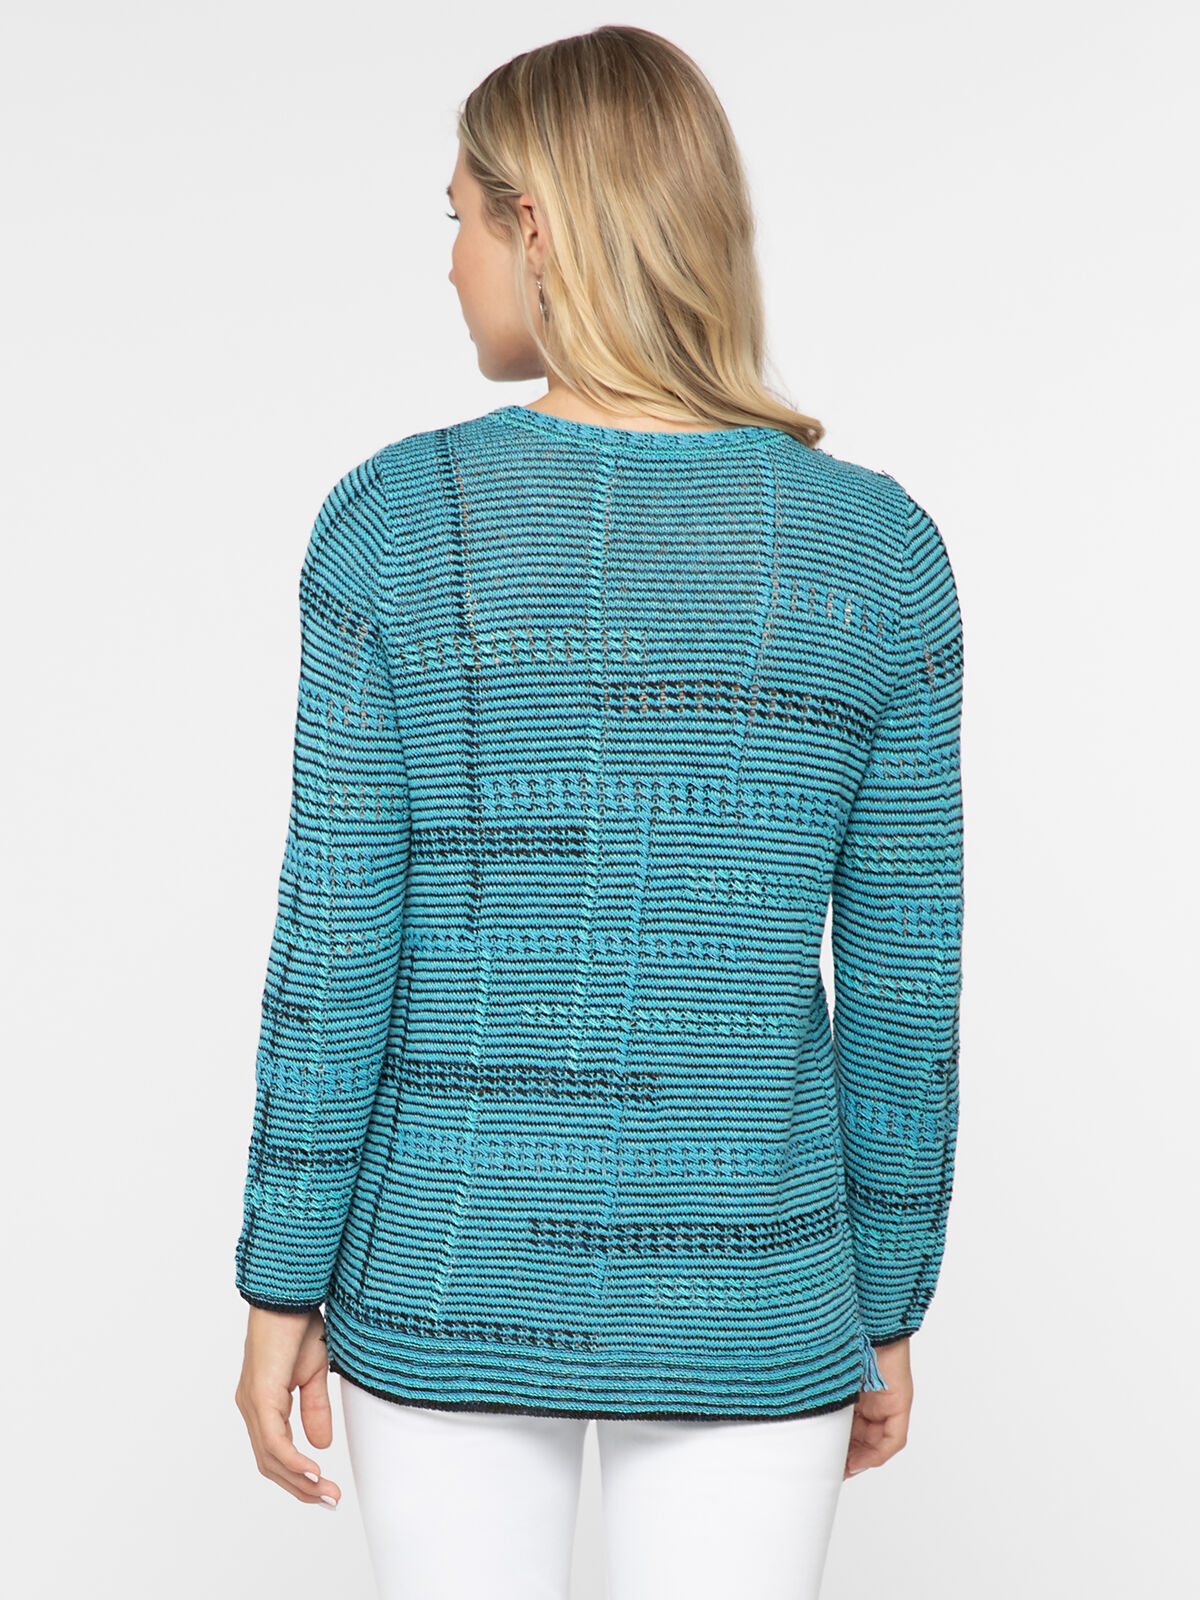 LINE OF WORK SWEATER